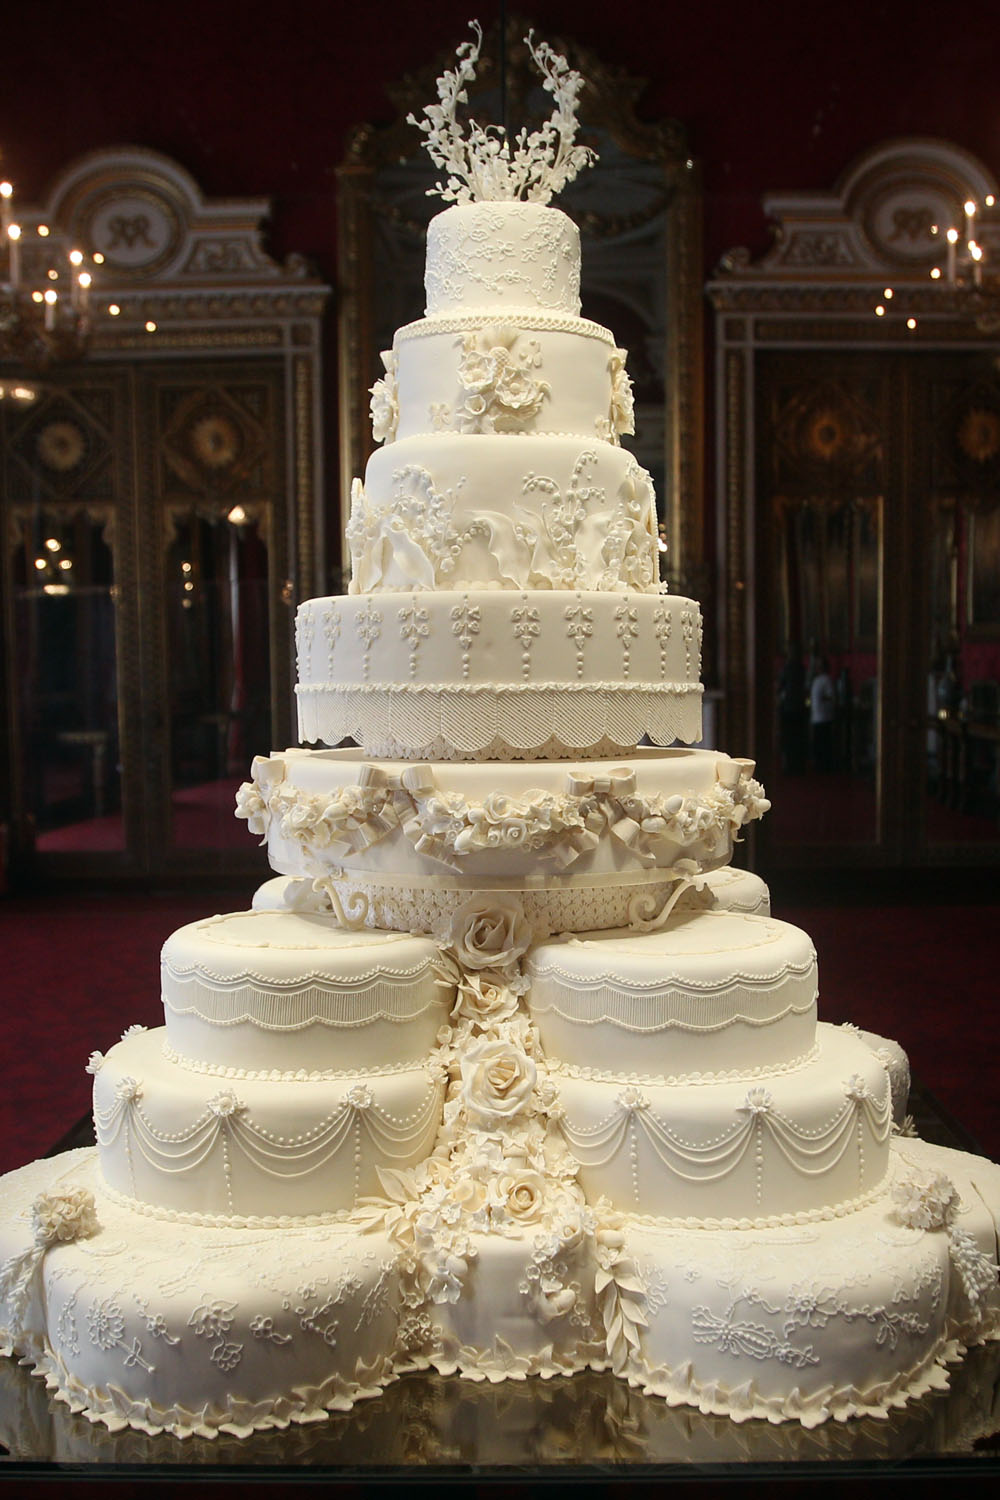 Celebrity Wedding Cakes Pictures To Inspire Your Own Cake Design